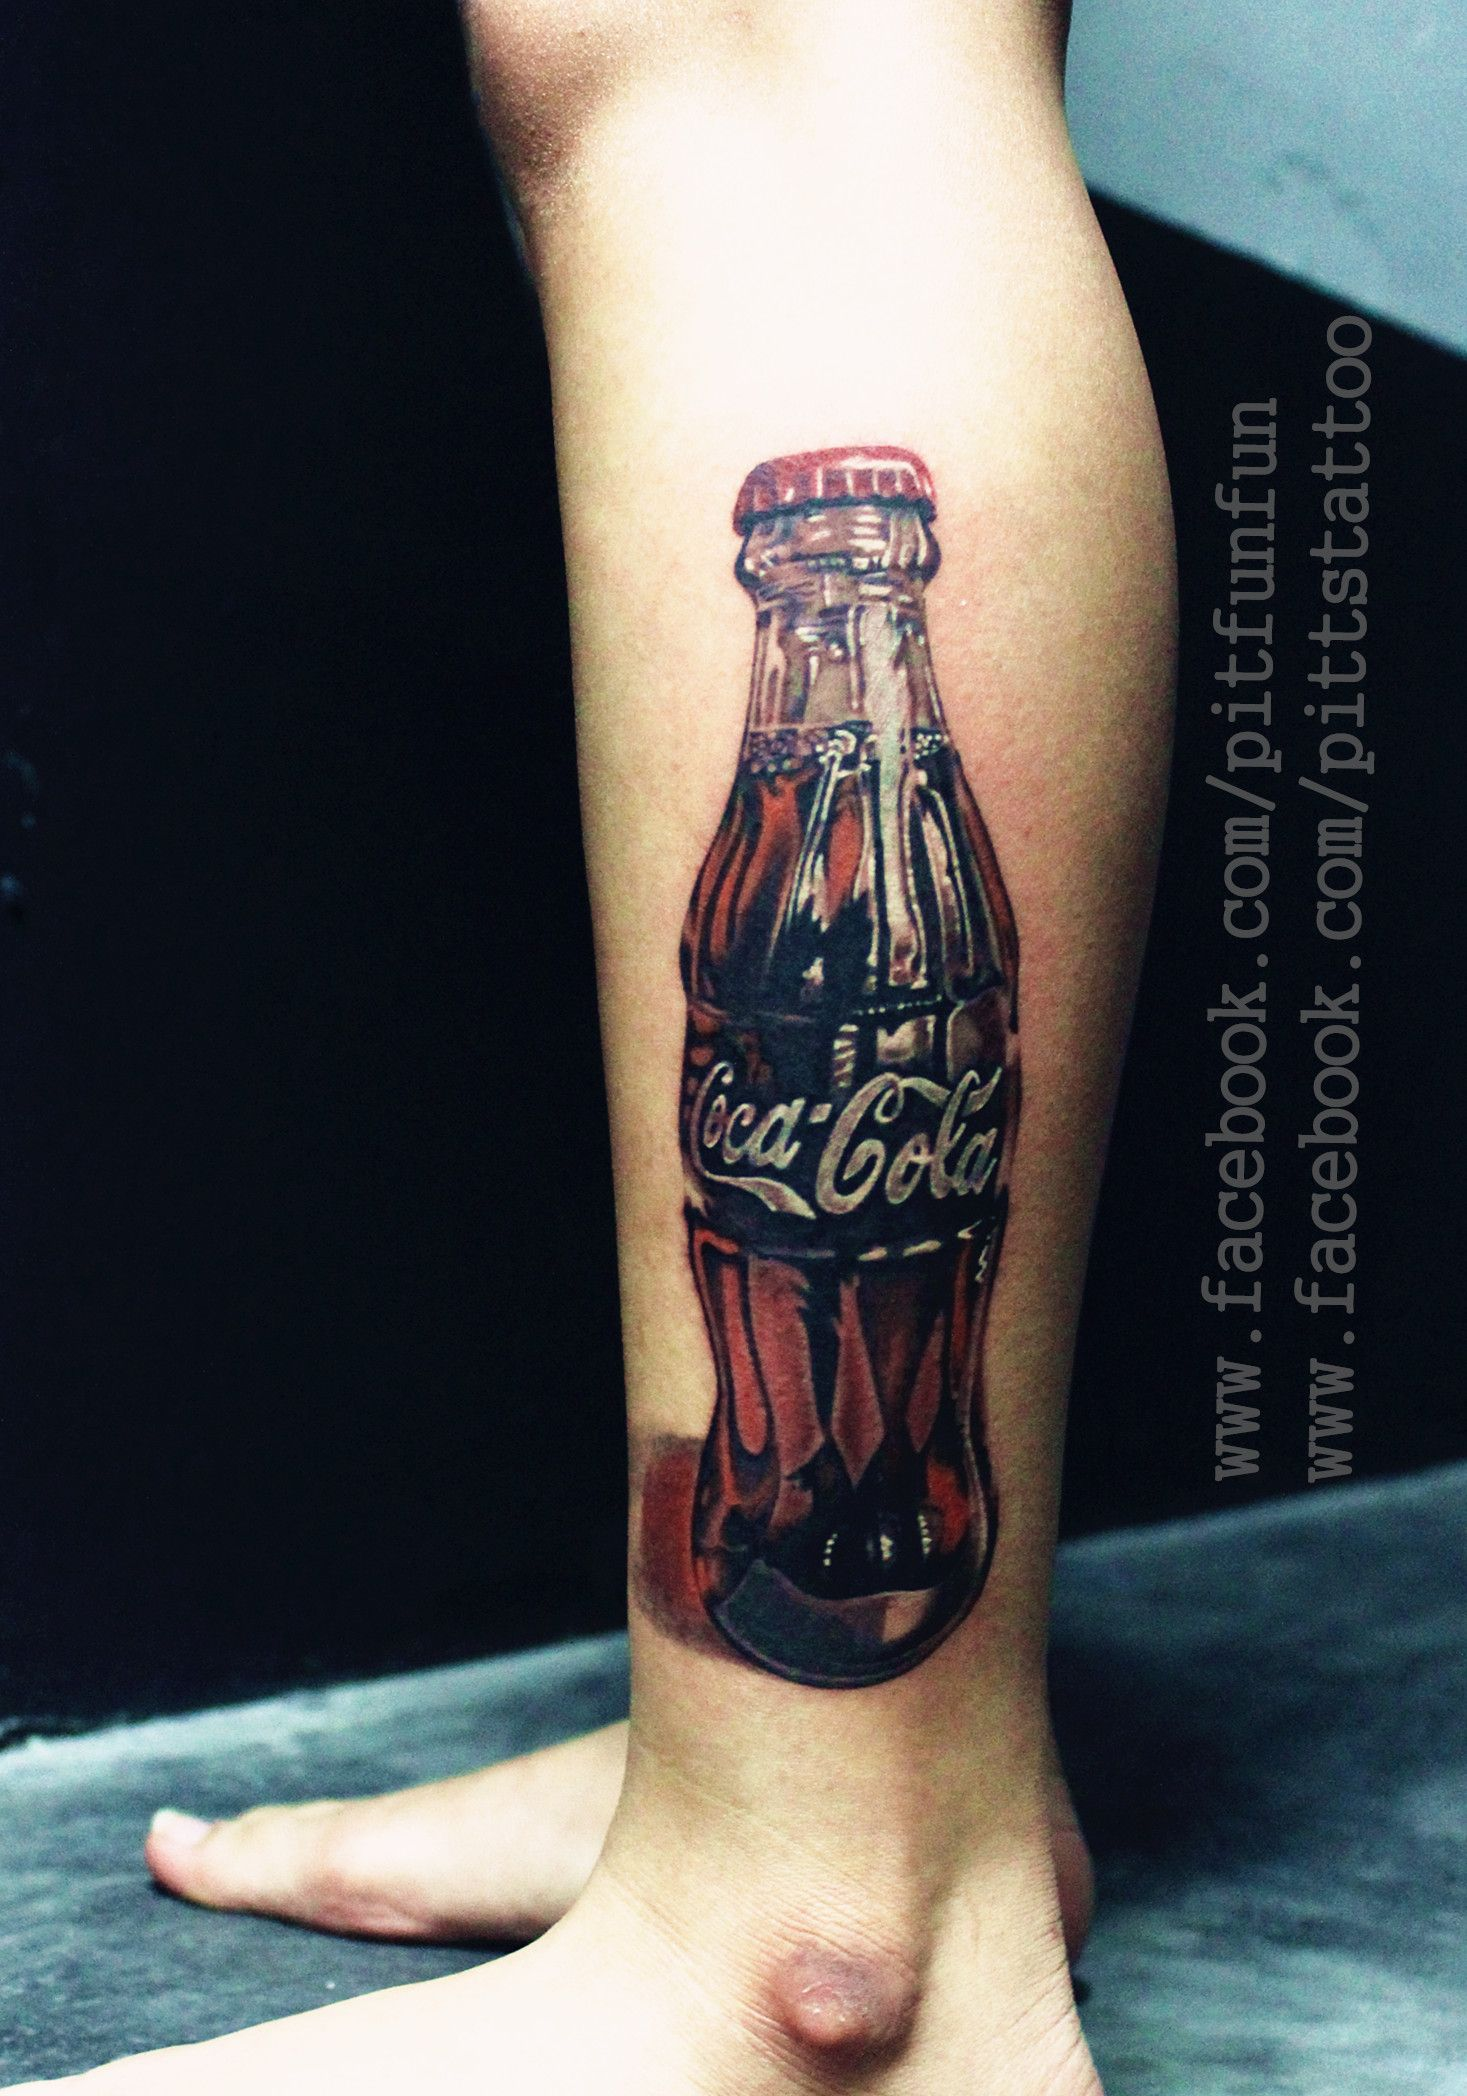 Route 66 tattoo picture at checkoutmyink com - Realistic Coca Cola Tattoo For More Pls Visit Www Facebook Com